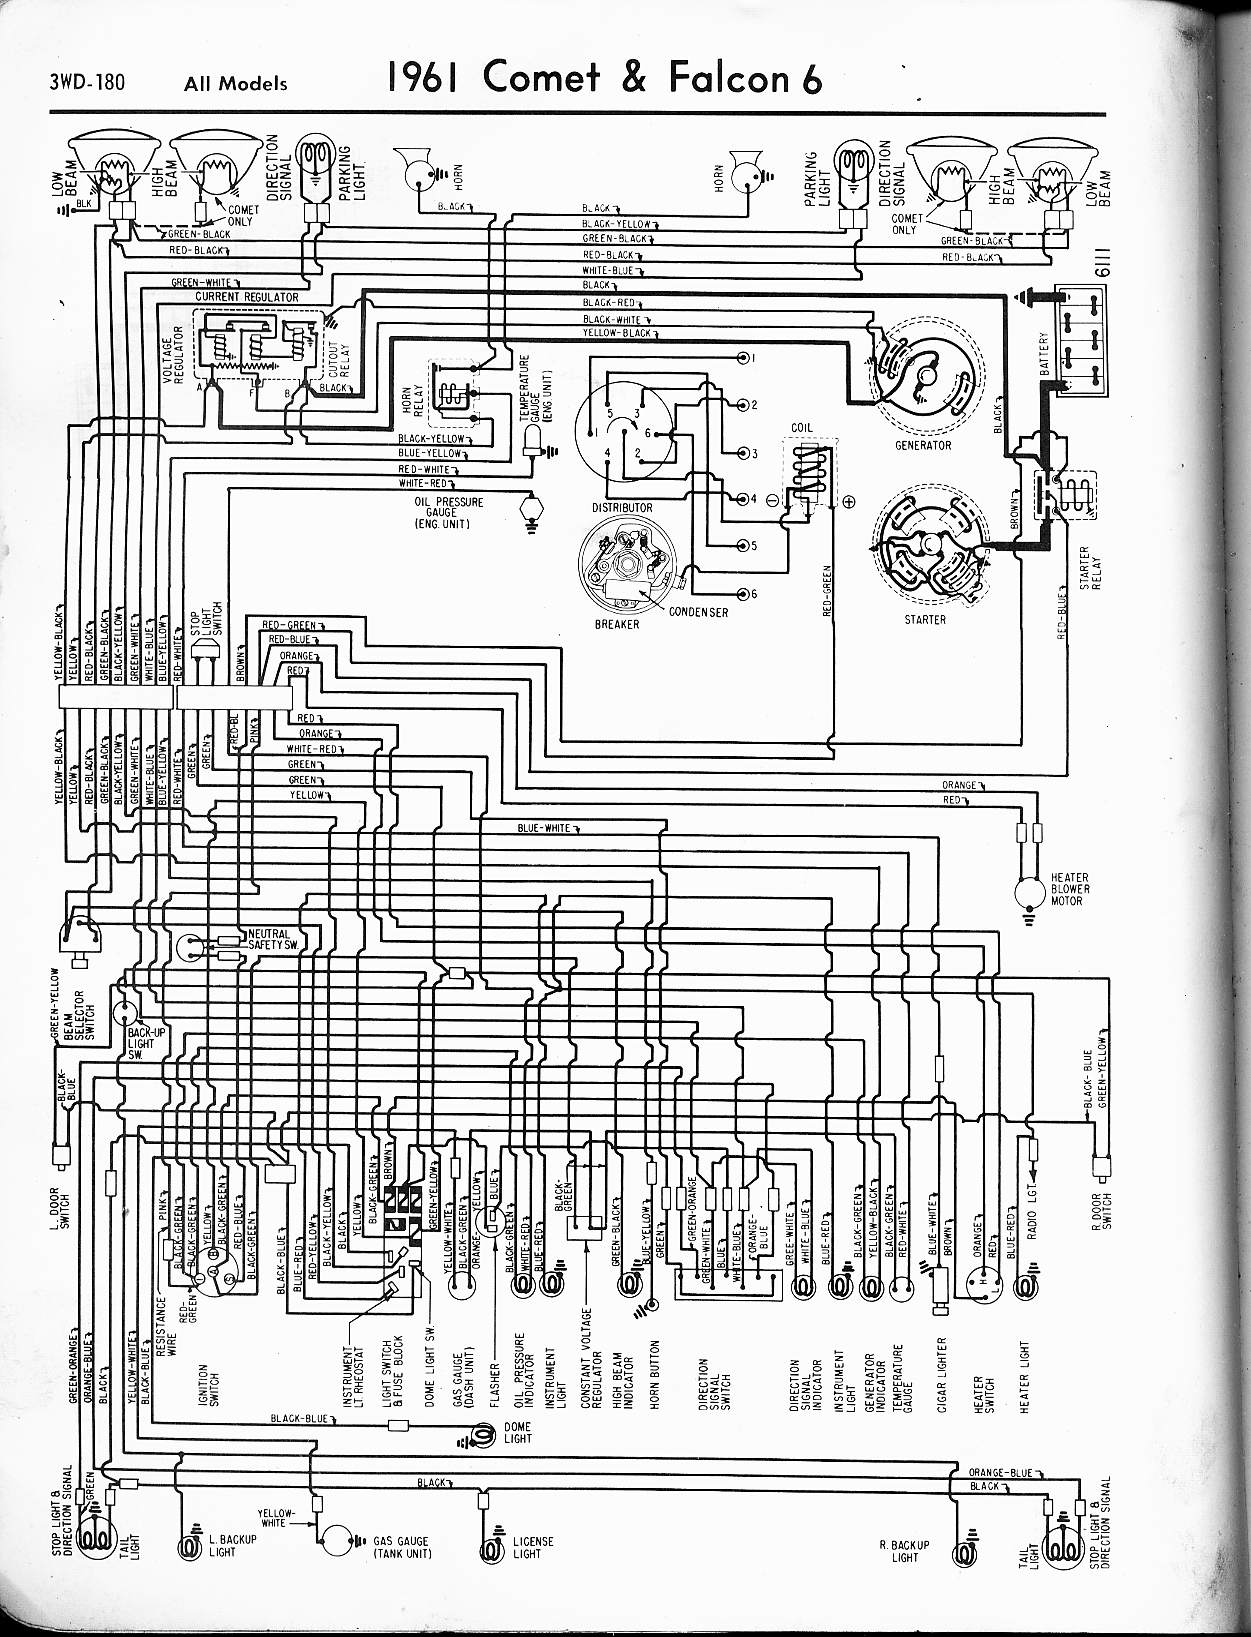 MWire5765 180 64 falcon wiring diagram 64 comet ignition wiring \u2022 wiring proteam 1500xp wiring diagram at readyjetset.co